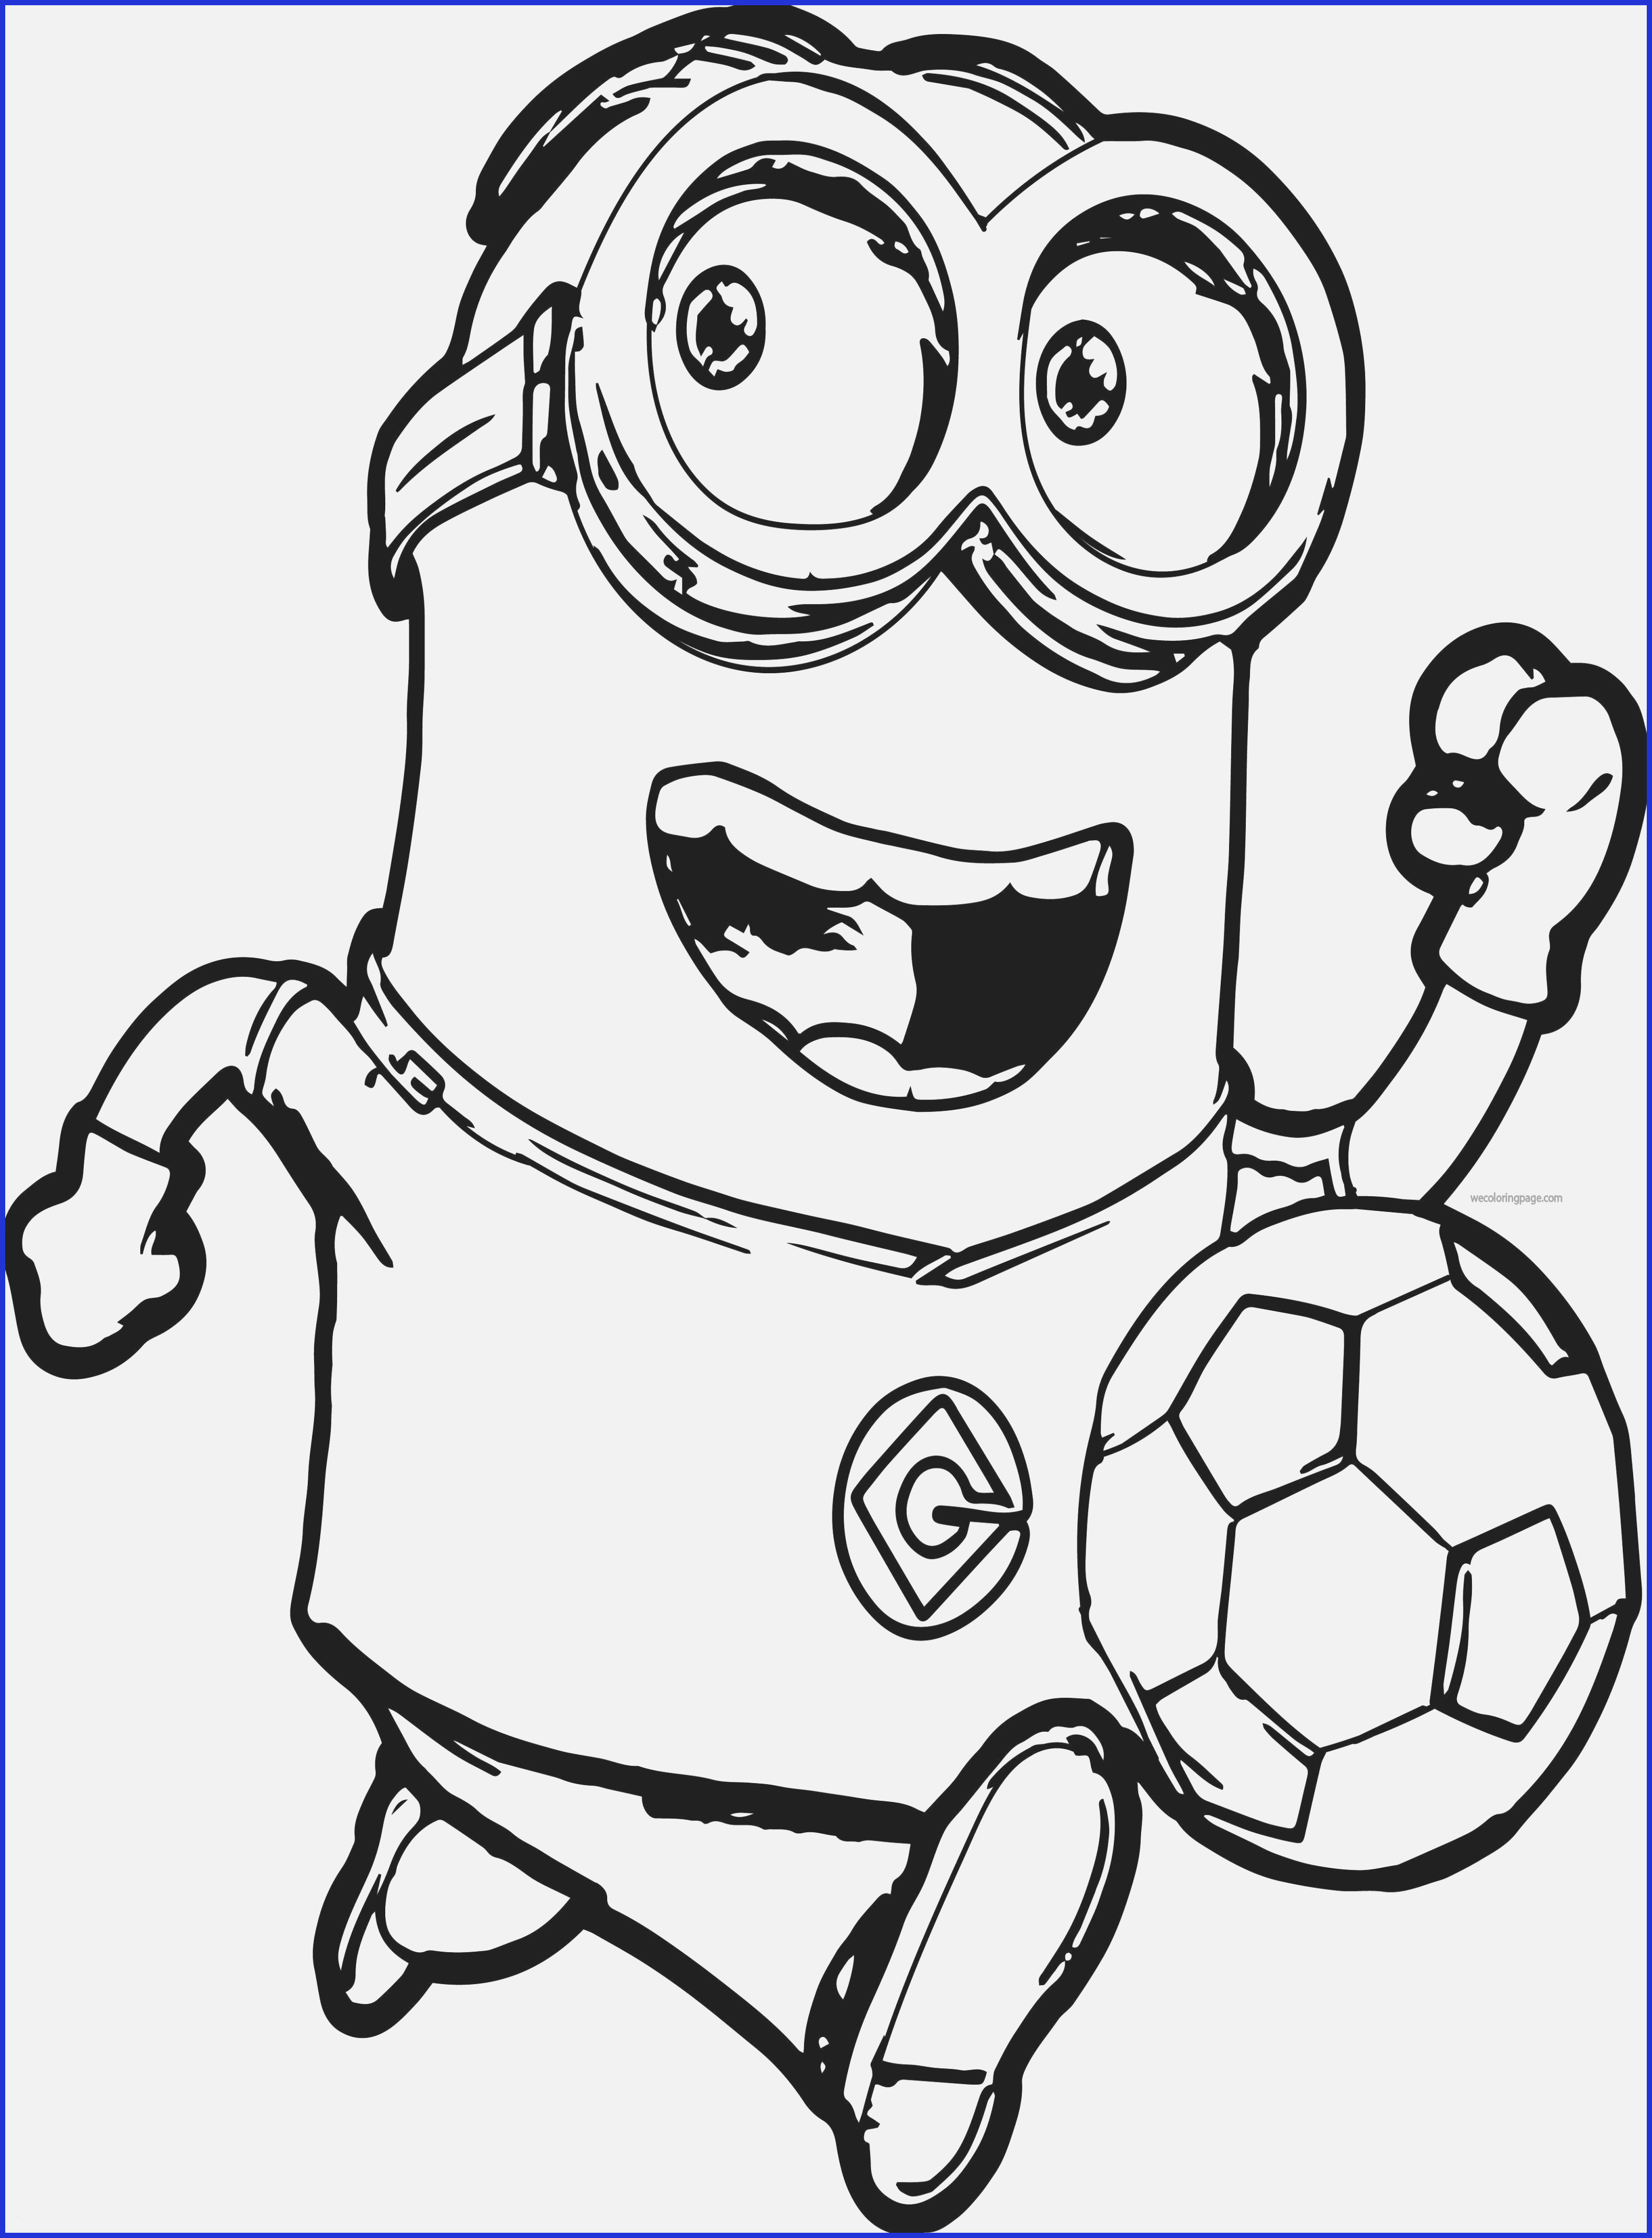 Despicable Coloring Pages Printable Despicable Me Coloring Pages Minion Soccer Player Coloring